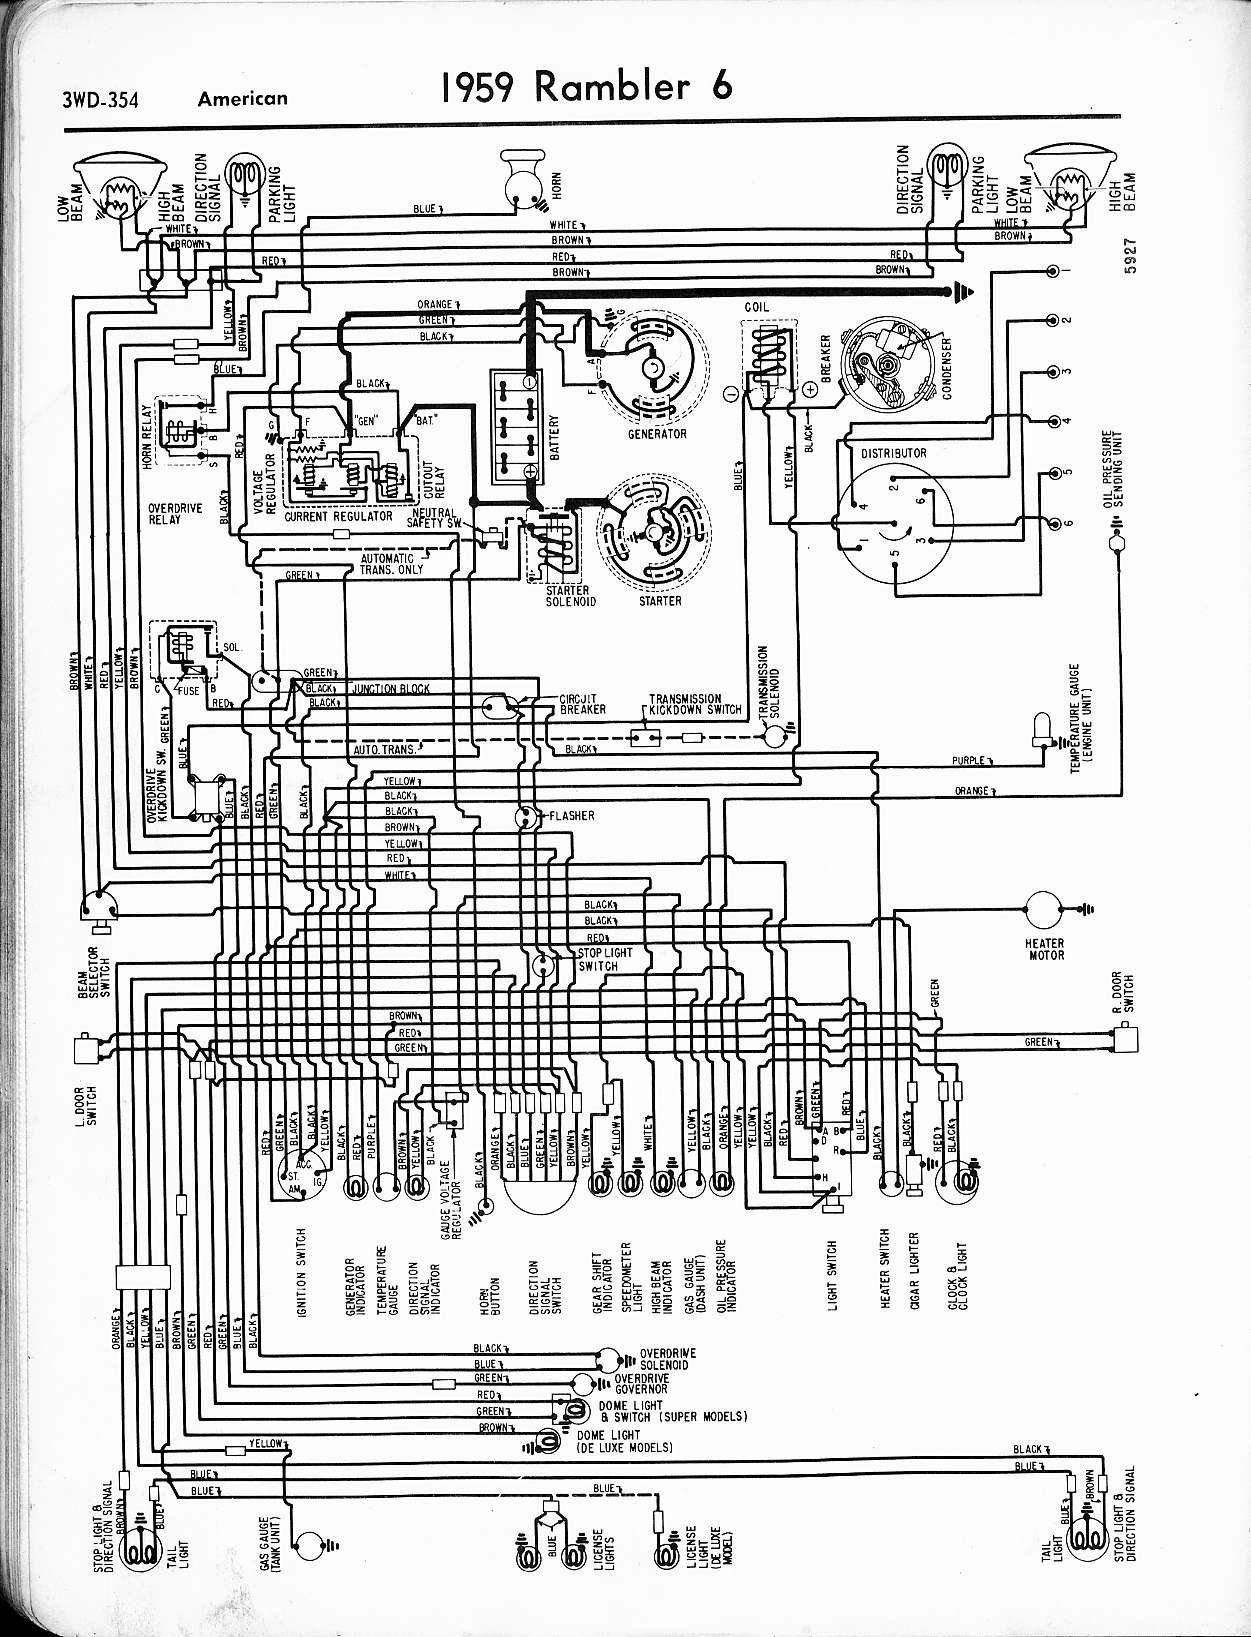 Rebel Starter Wire Diagram Real Wiring 327 Chevy Get Free Image About Rambler Diagrams The Old Car Manual Project Rh Oldcarmanualproject Com Solenoid Small Block